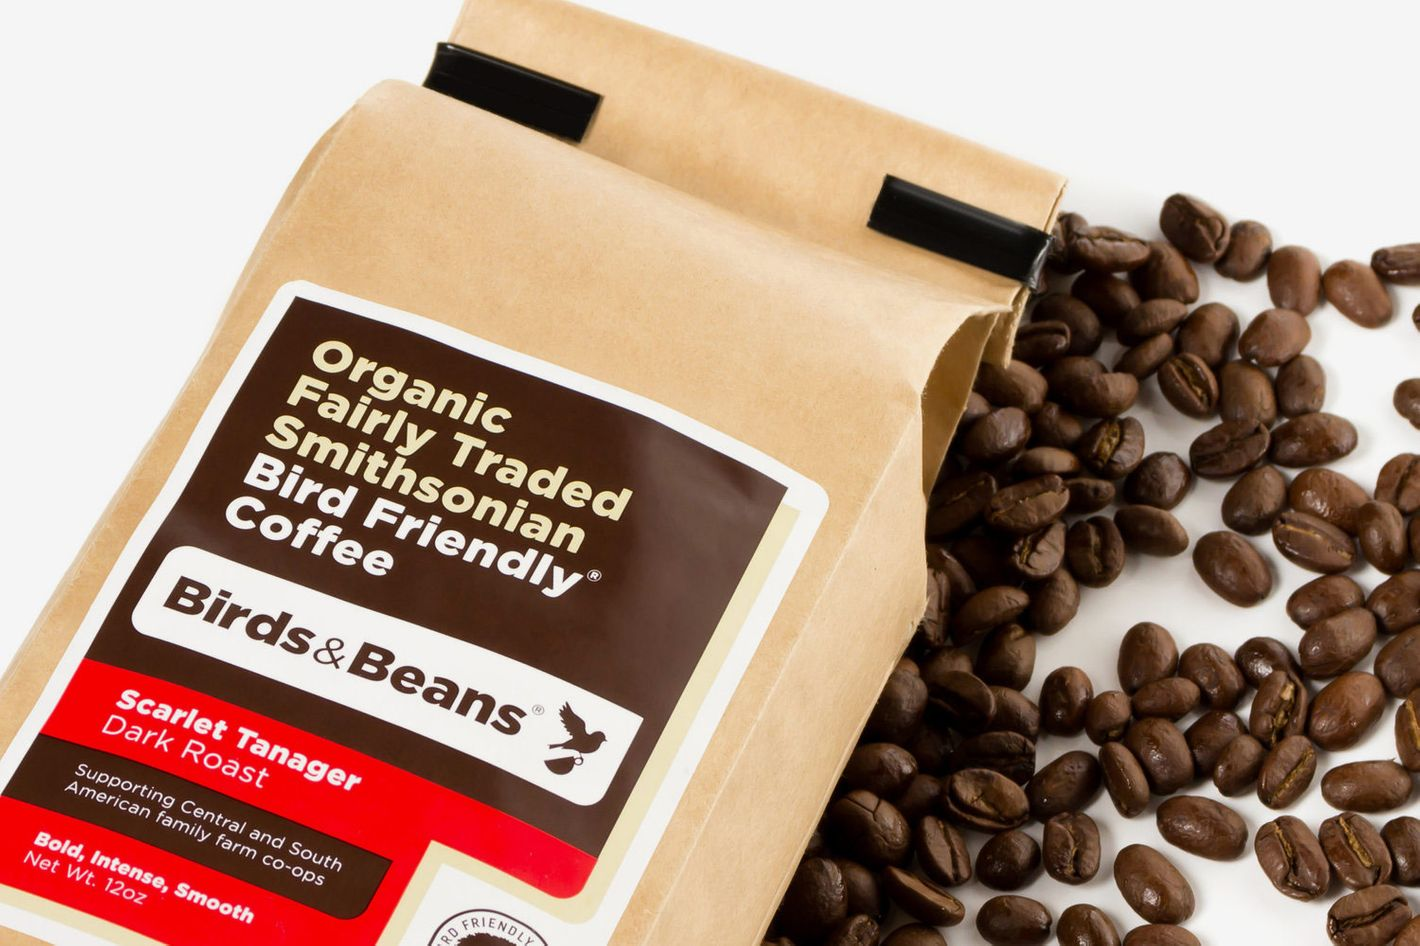 Birds and Beans Coffee Subscription